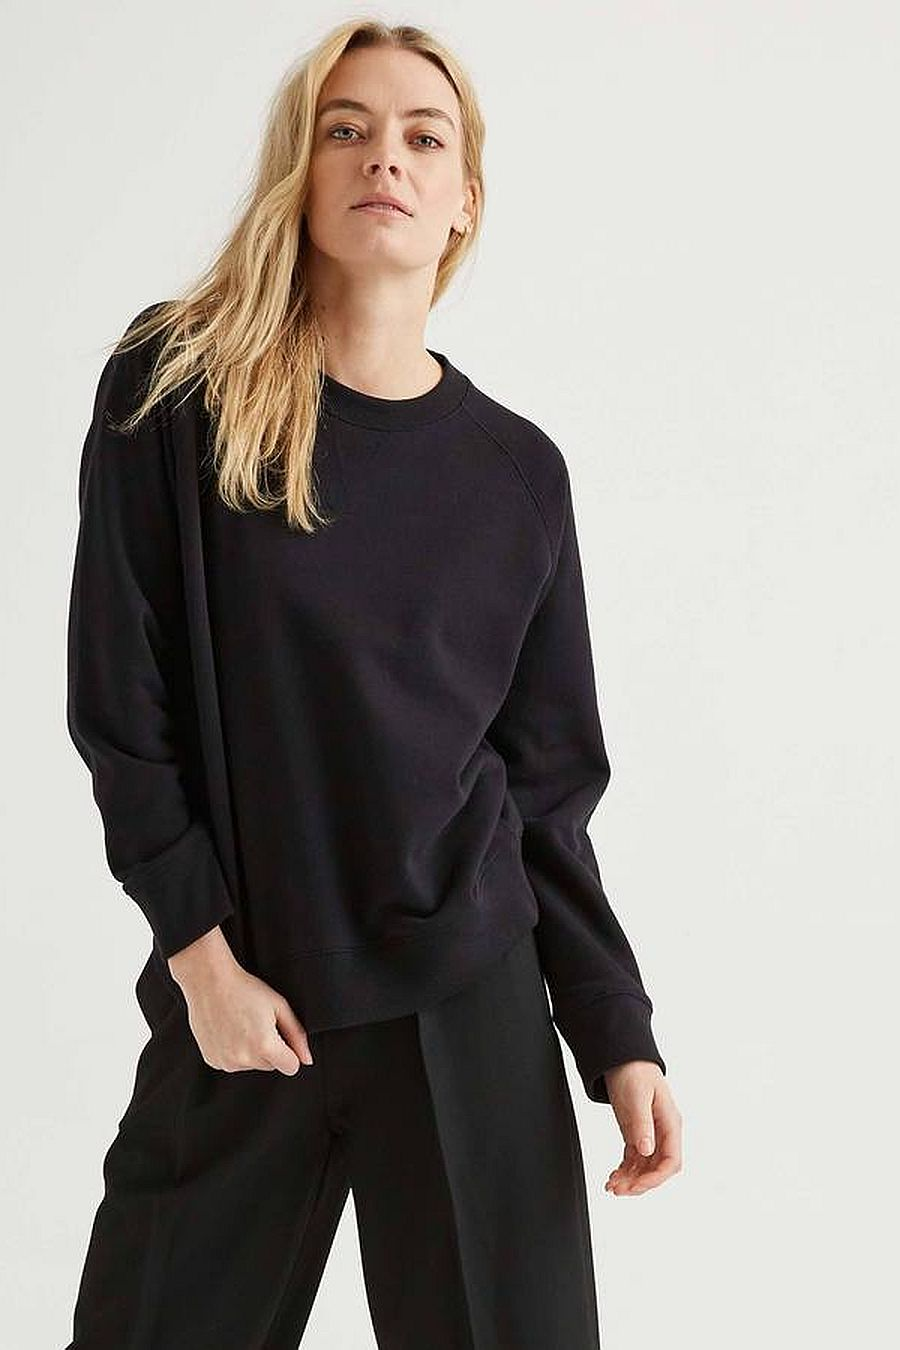 Richer Poorer Fleece Sweatshirt - Black